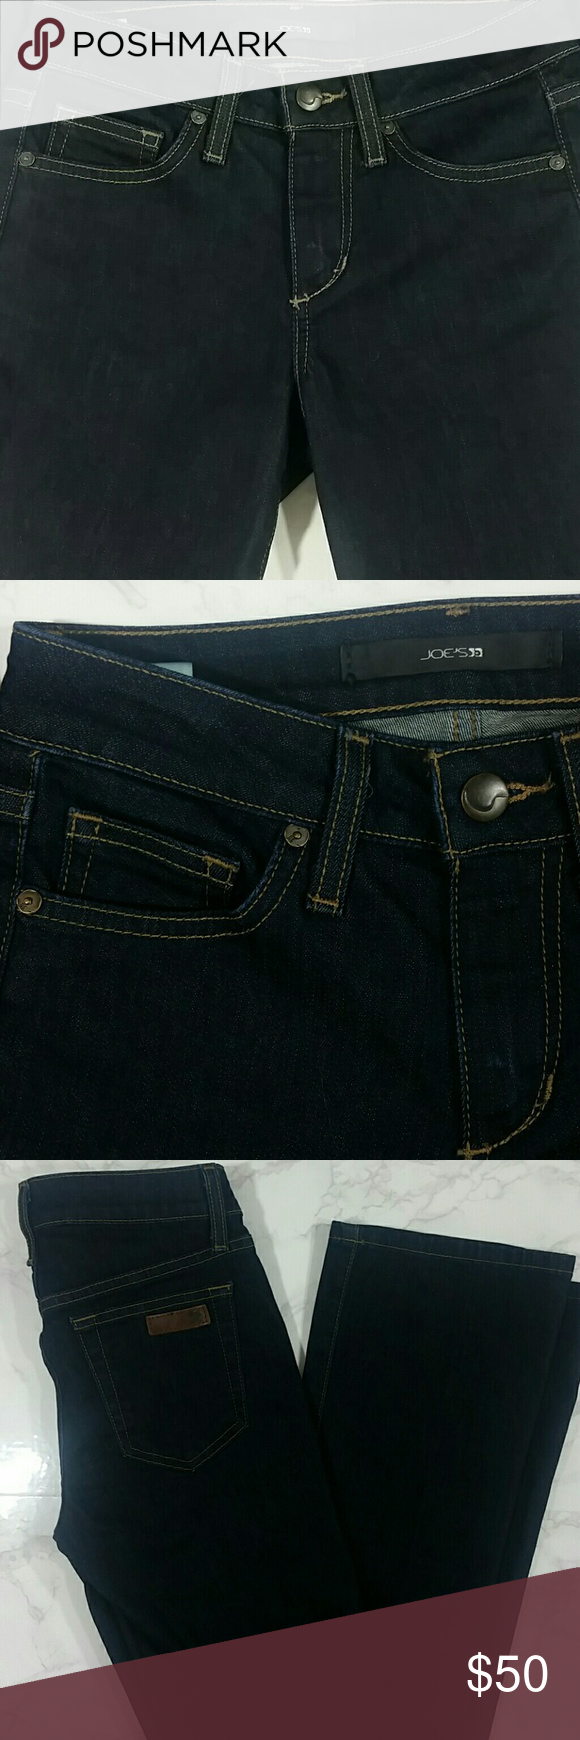 "Joe Jeans Curvy Bootcut In excellent condition! Length - 42"" Inseam - 33"" 8"" Front Rise Joe's Jeans Jeans"